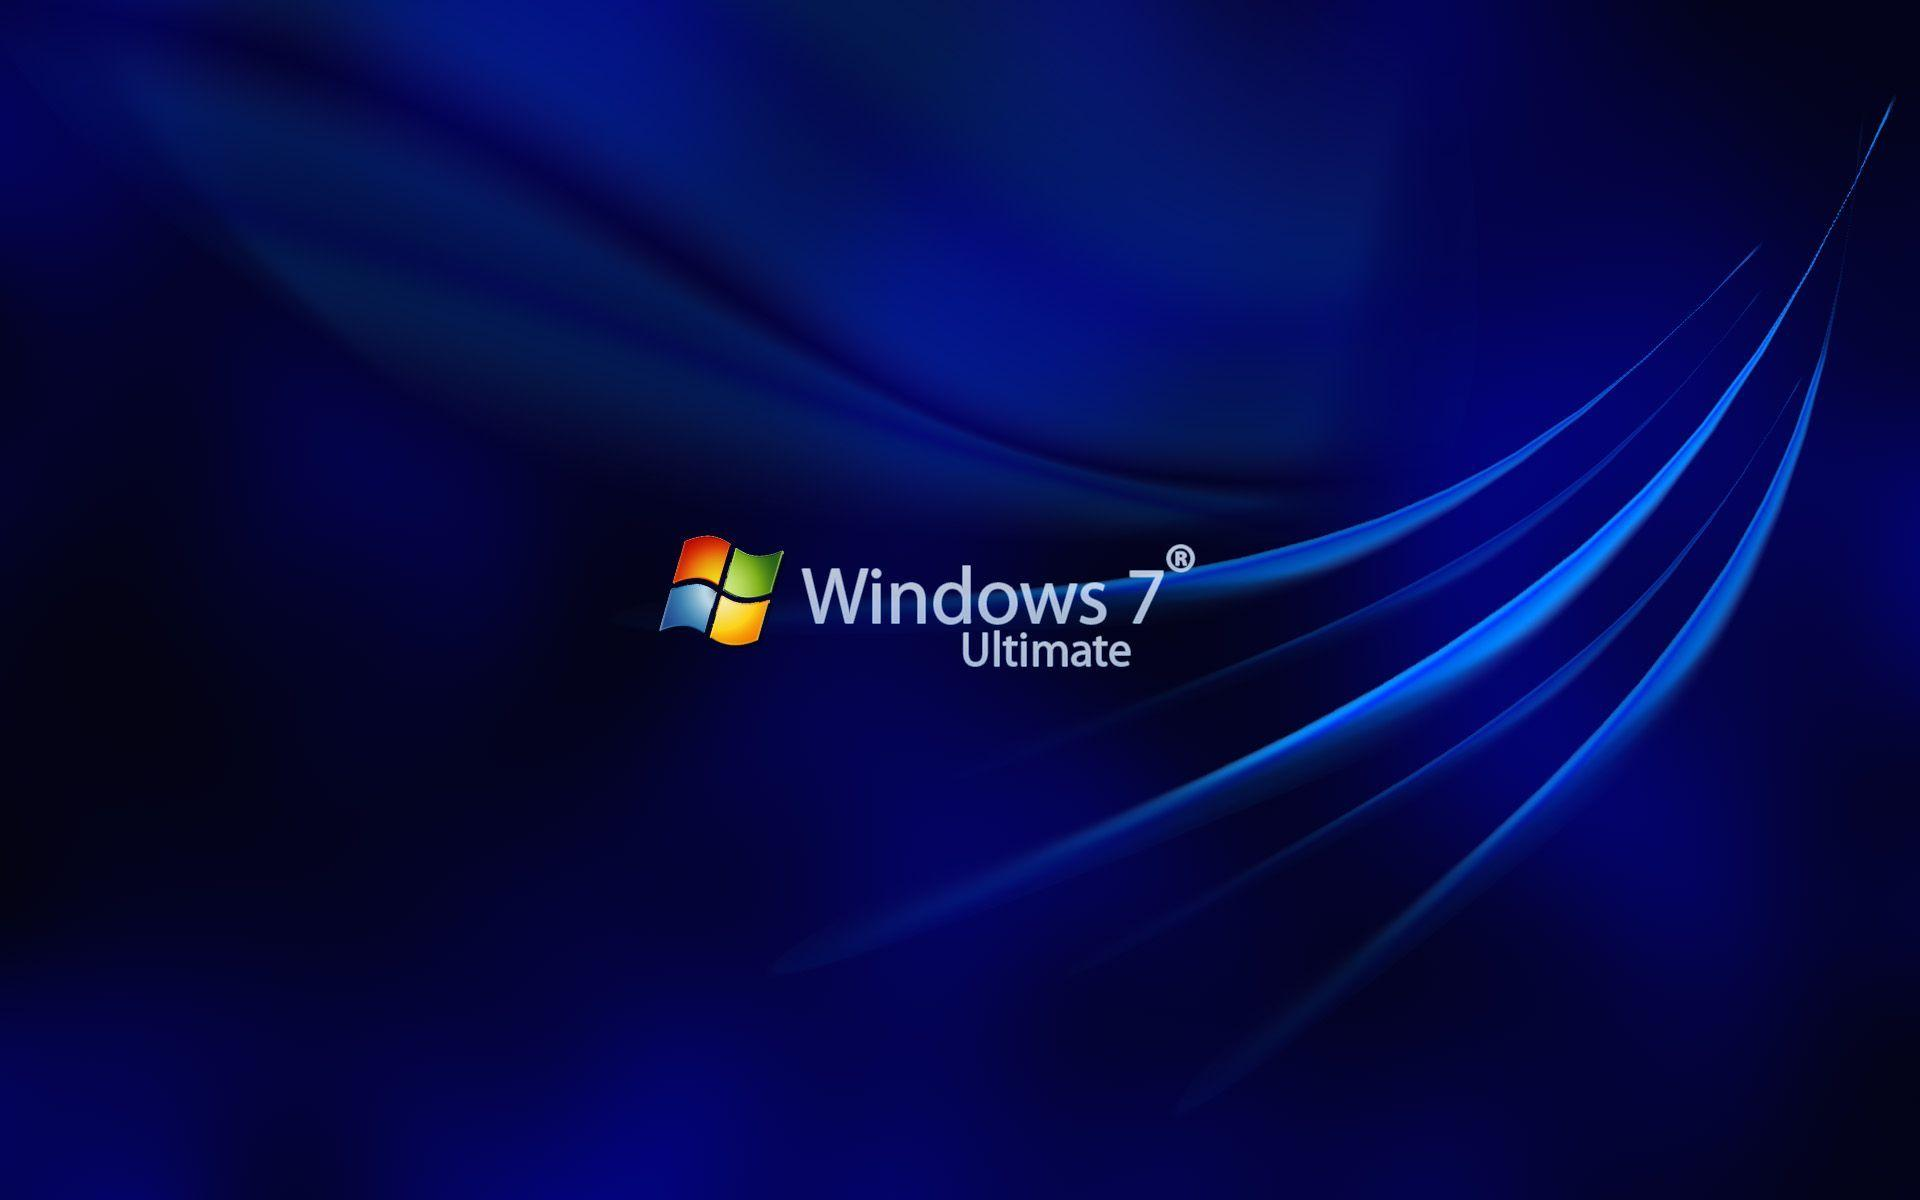 windows 7 ultimate wallpapers hd - wallpaper cave